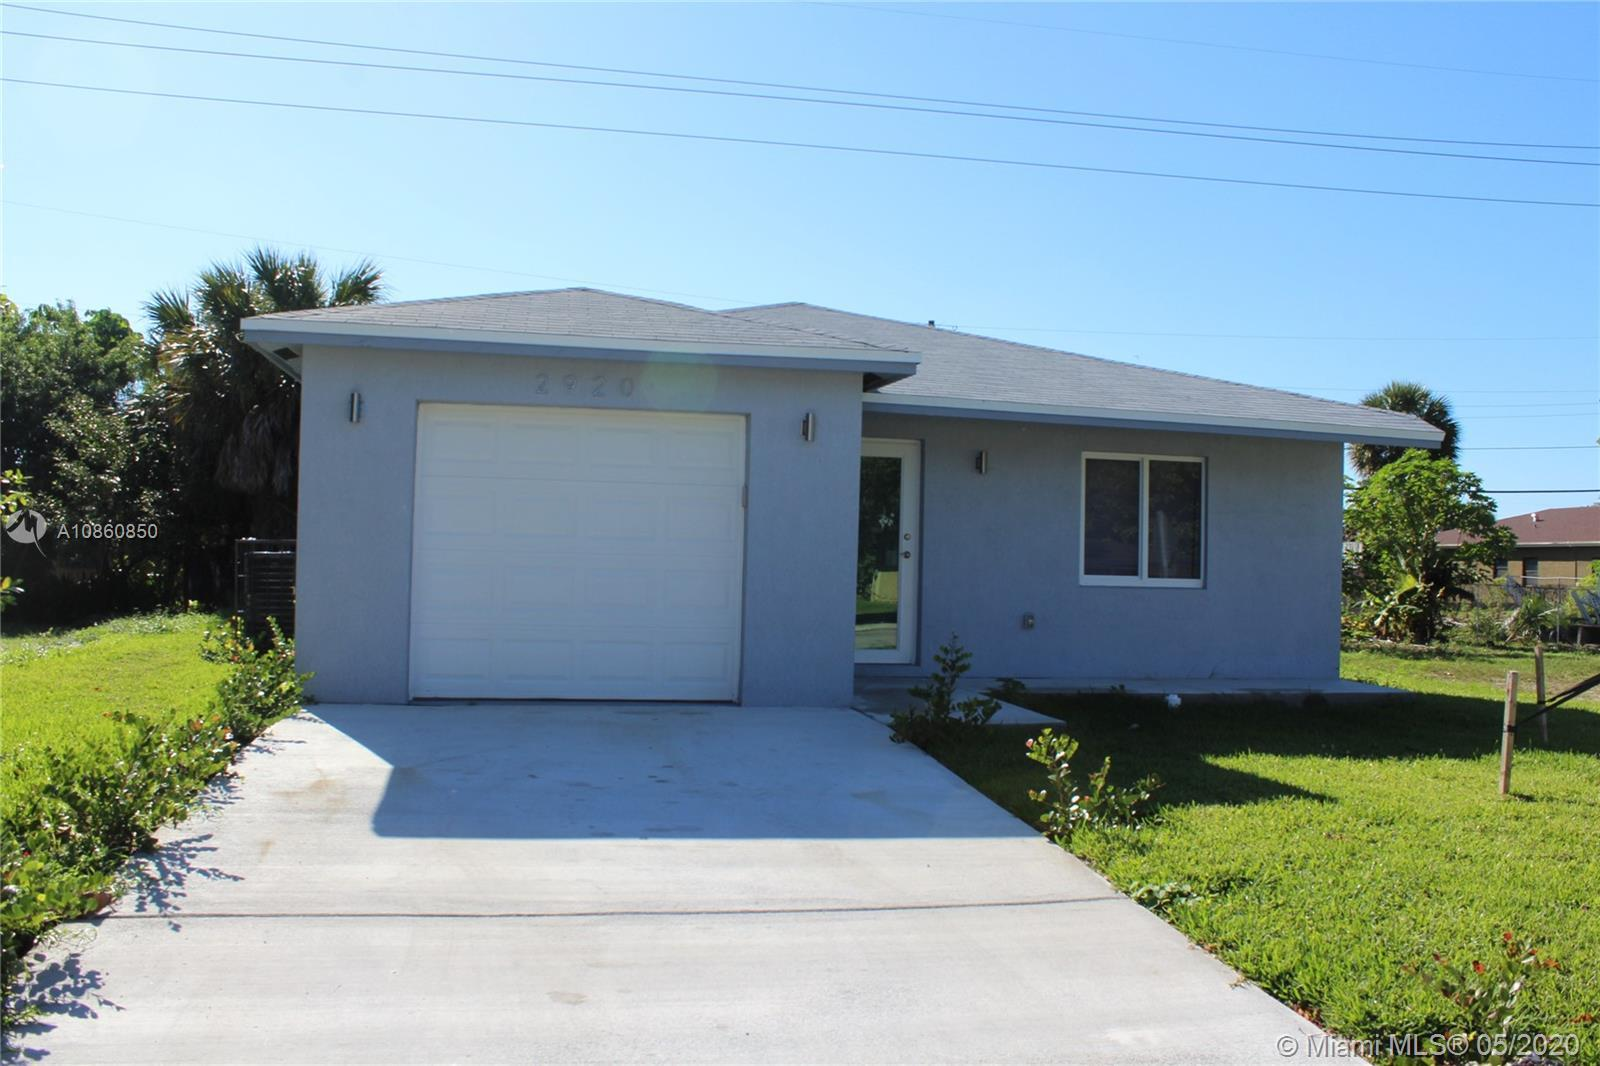 BRAND NEW HOME 4 BEDROOM 2 BATH WITH 1 CAR GARAGE, LOTS OF UPGRADES, STAINLESS STEEL KITCHEN APPLIAN